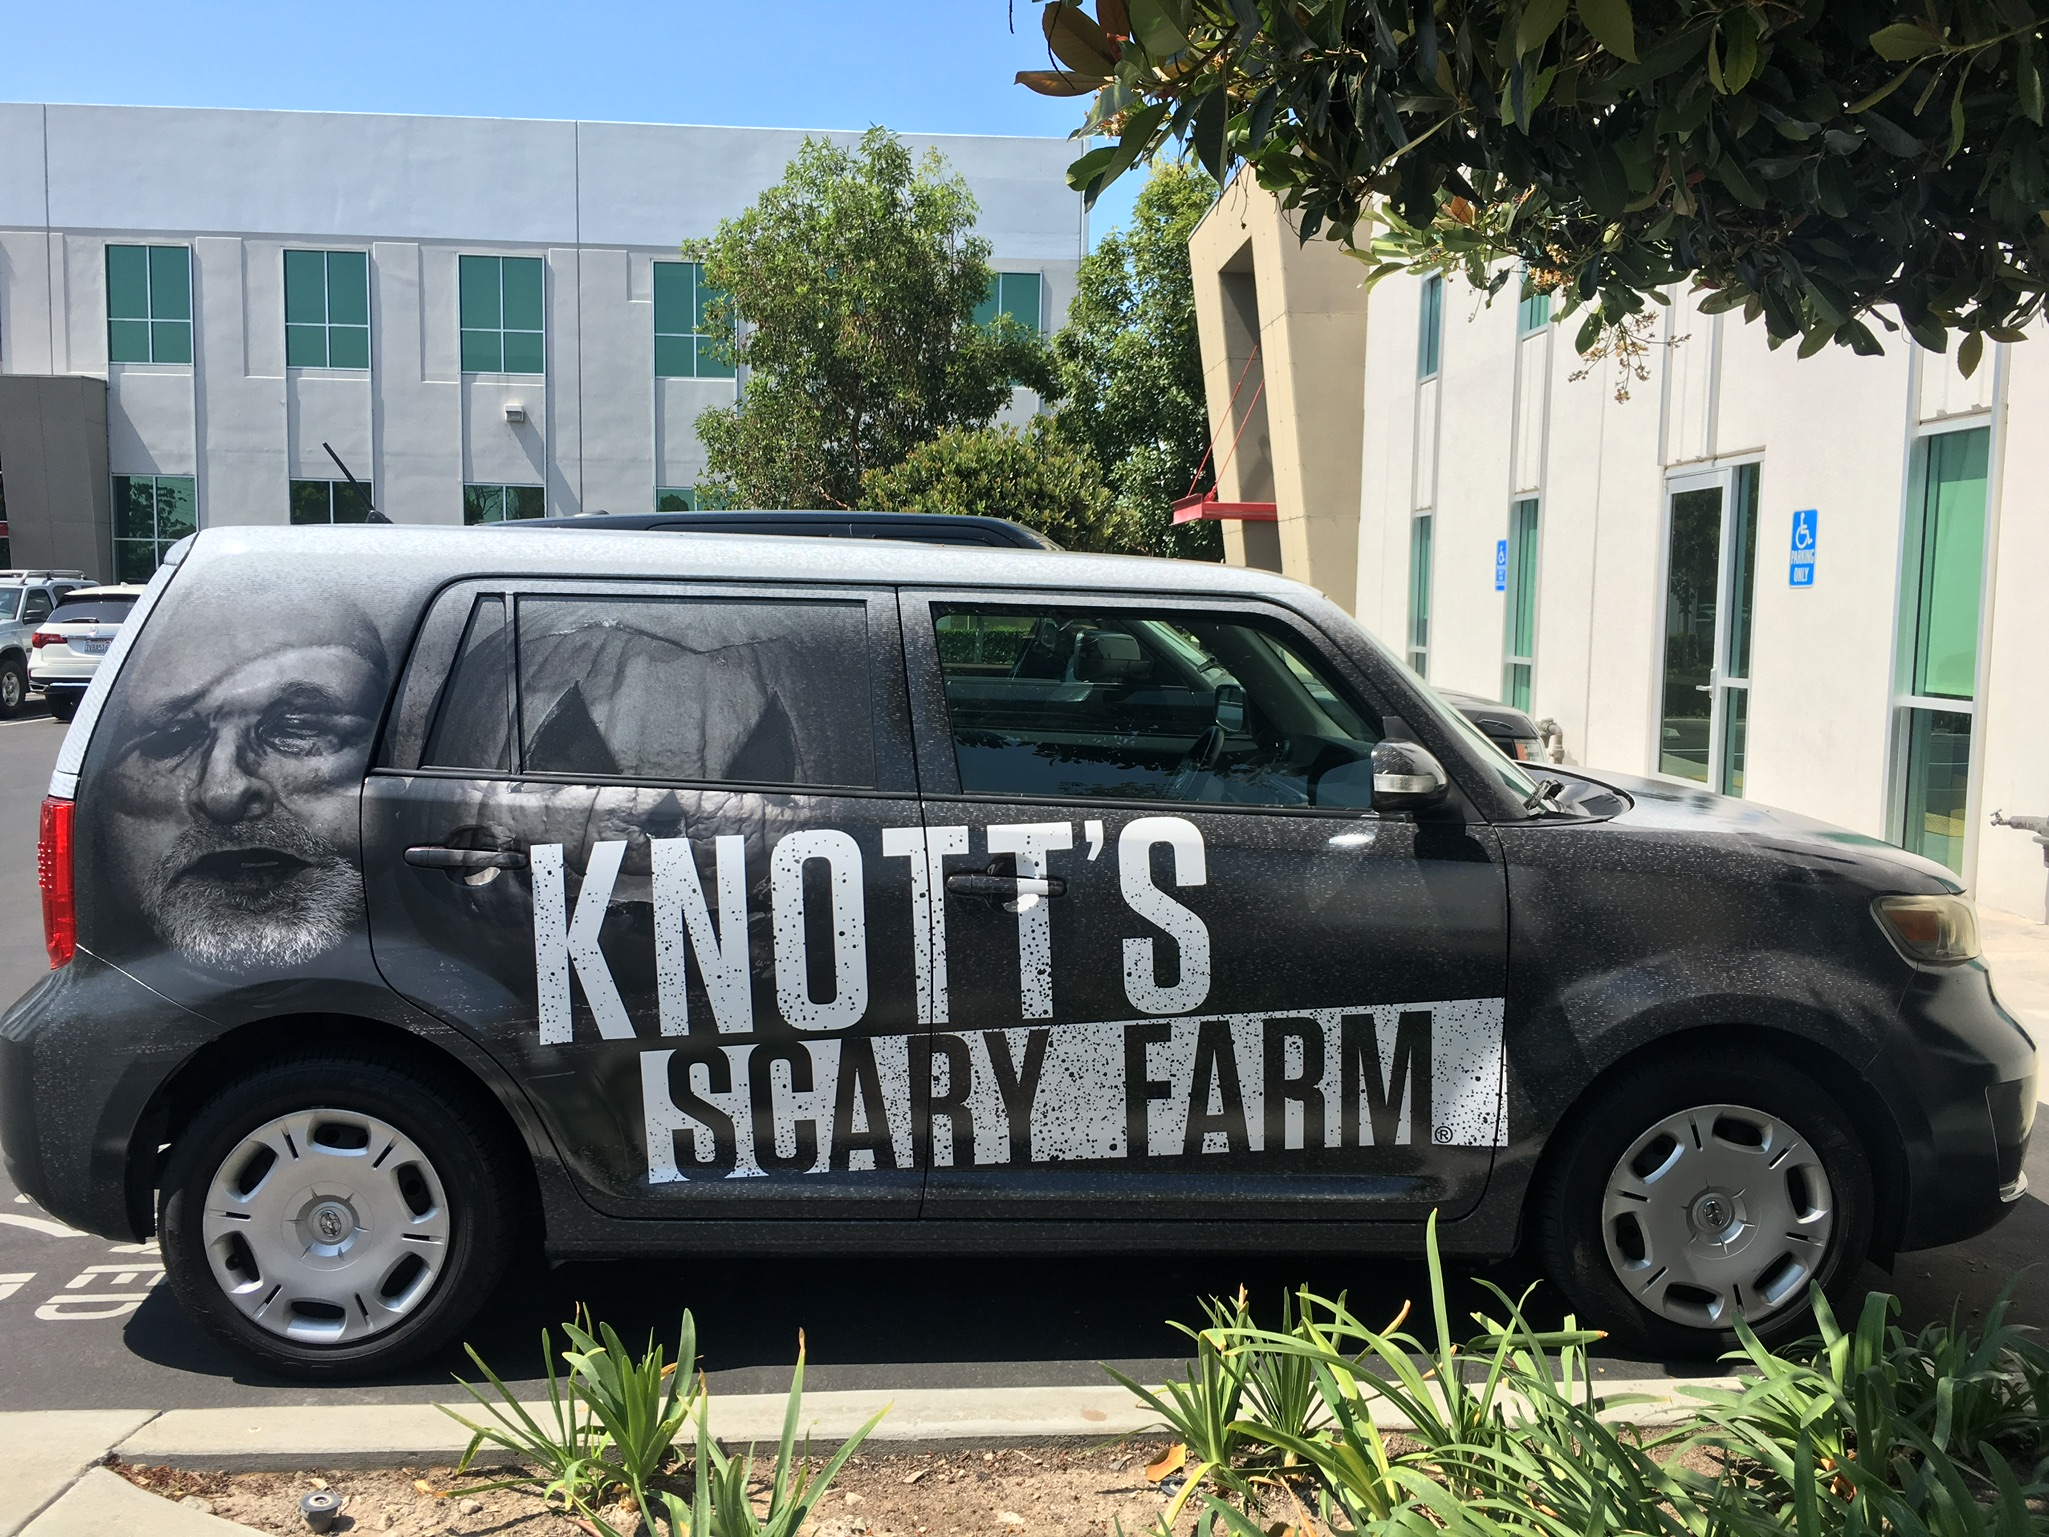 Knotts car wrap